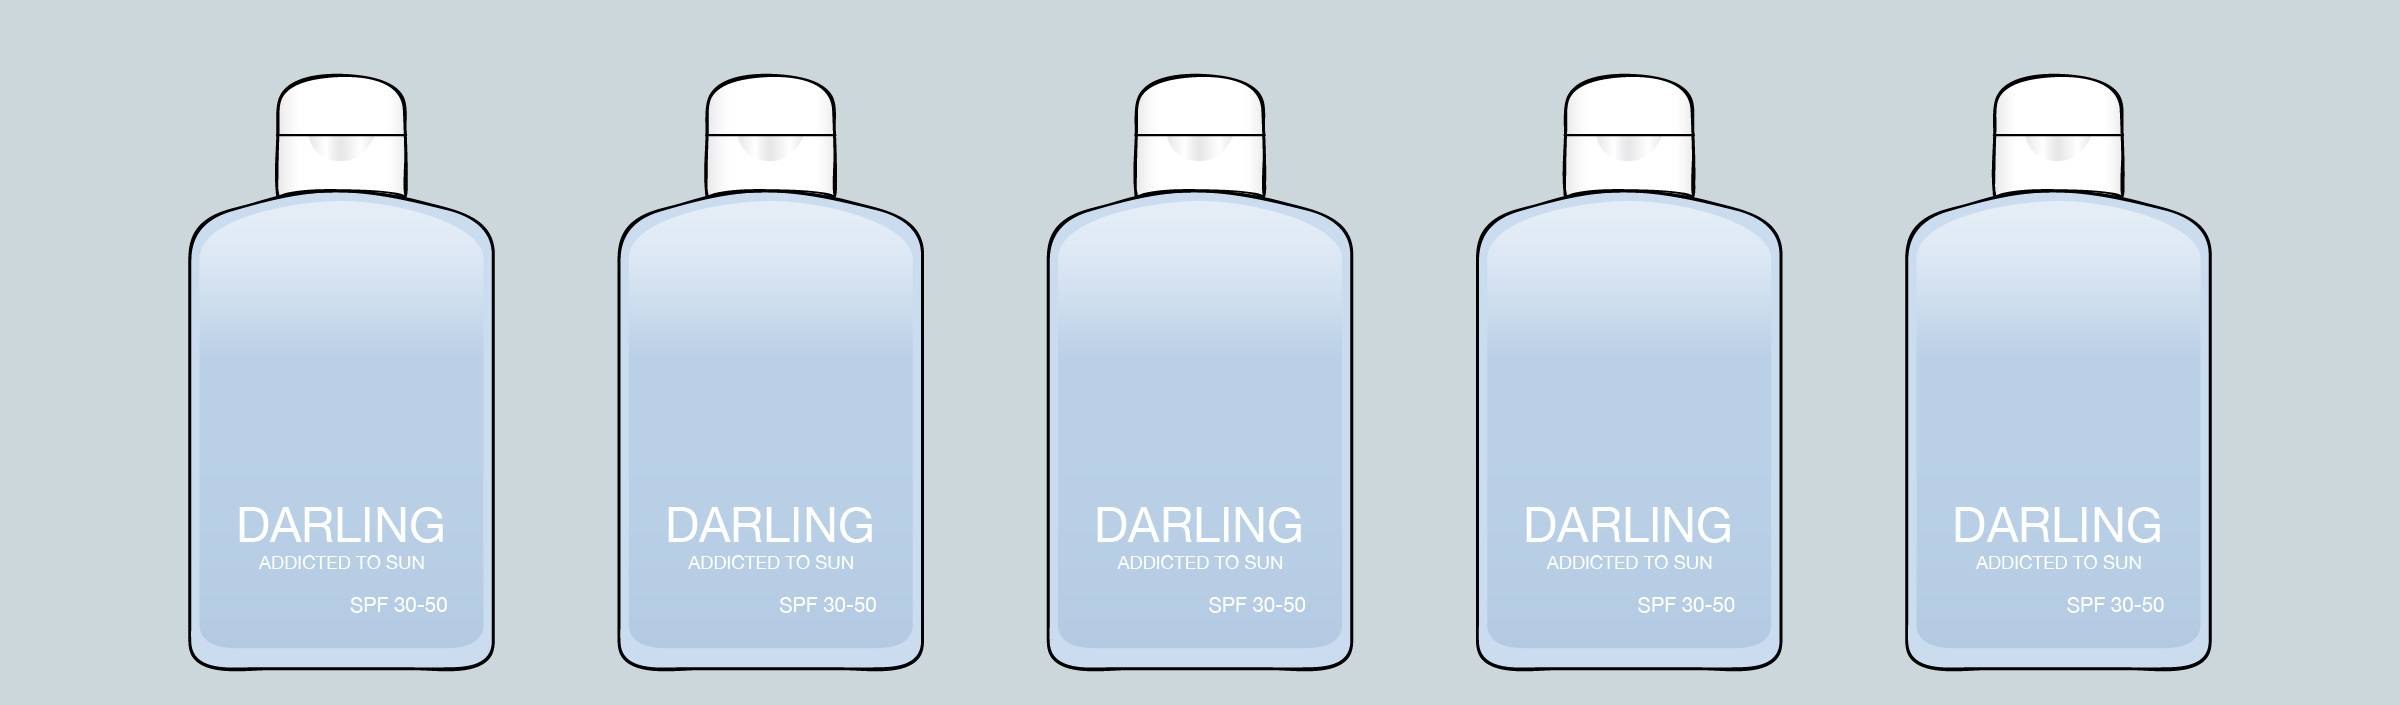 Darling Addicted To Sun High Protection Review.jpg